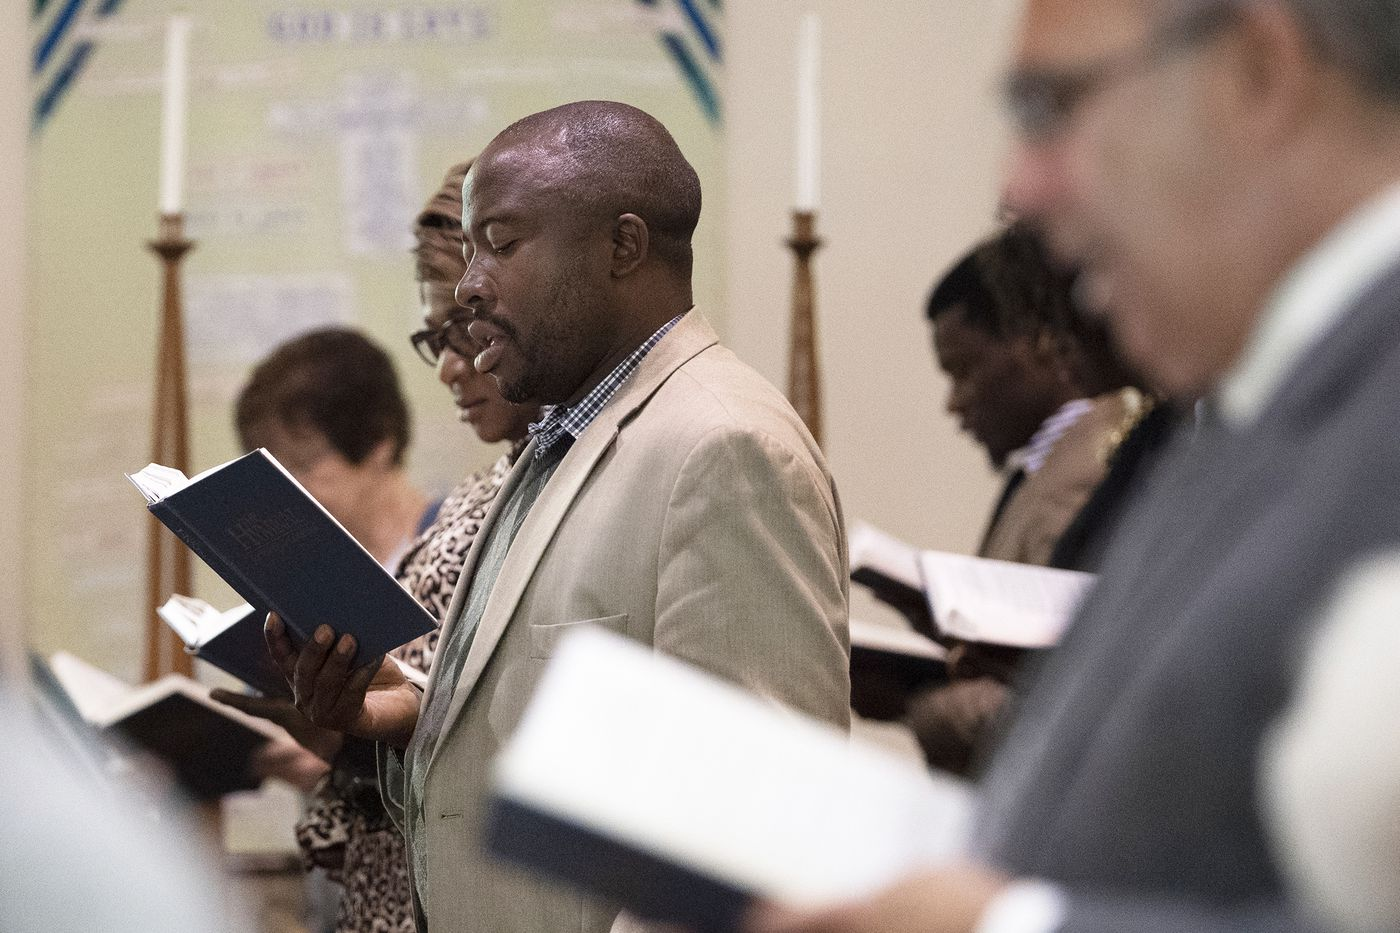 Silva Munuza, center, who emigrated from Cameroon to the United States 10 years ago, prays during Sunday services at St. Paul's Presbyterian Church in Laurel Springs. Munuza is an elder at the church and is working to educate the congregation about the increasingly deadly political violence in his homeland.